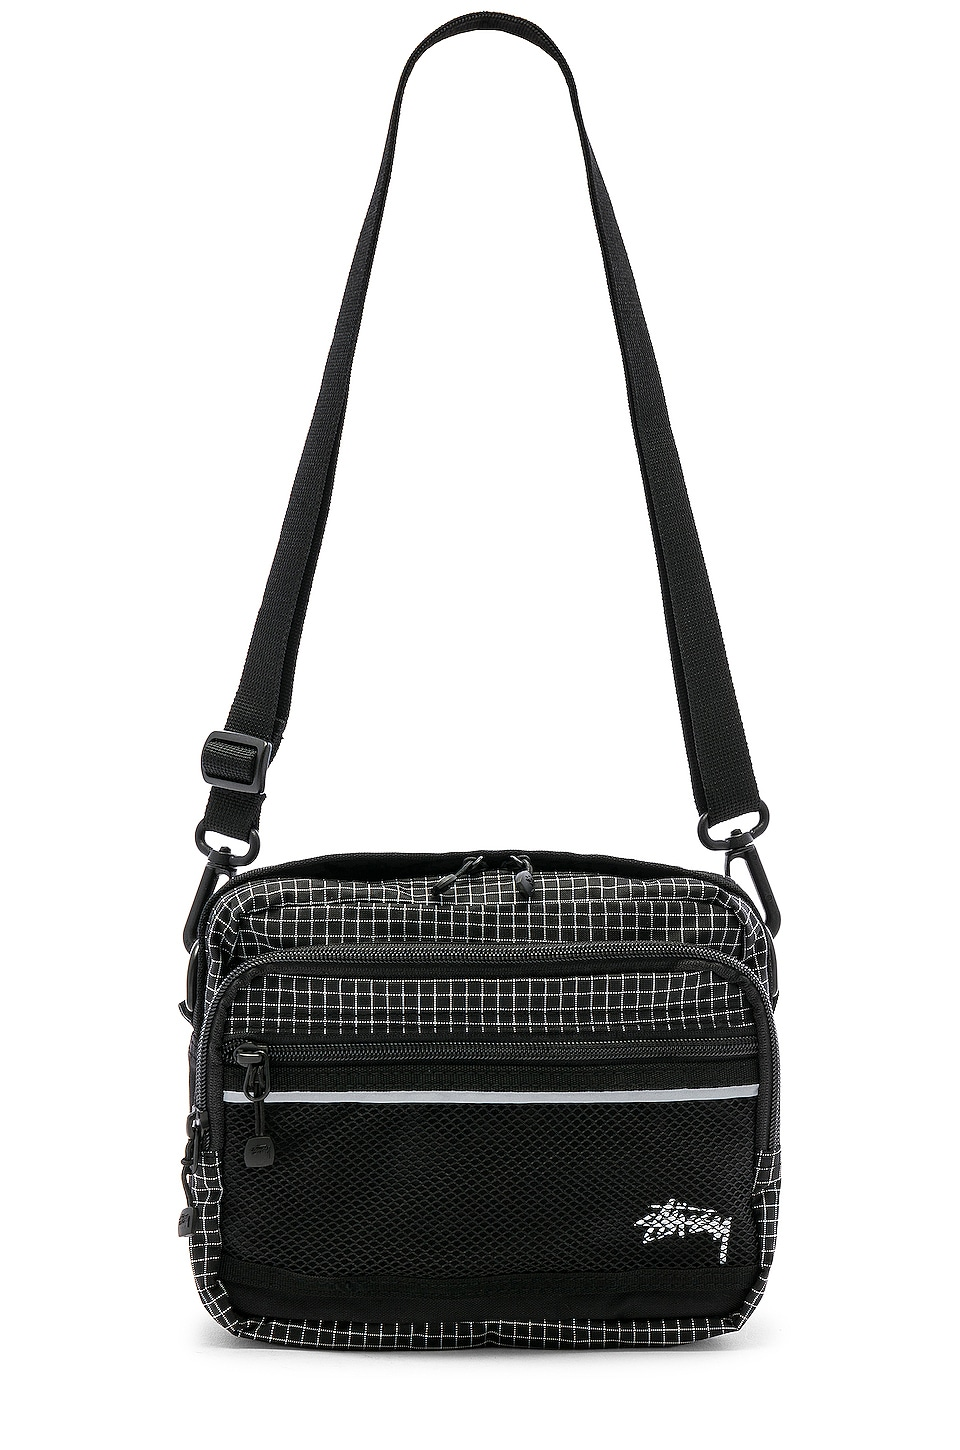 Stussy Ripstop Nylon Shoulder Bag in Black